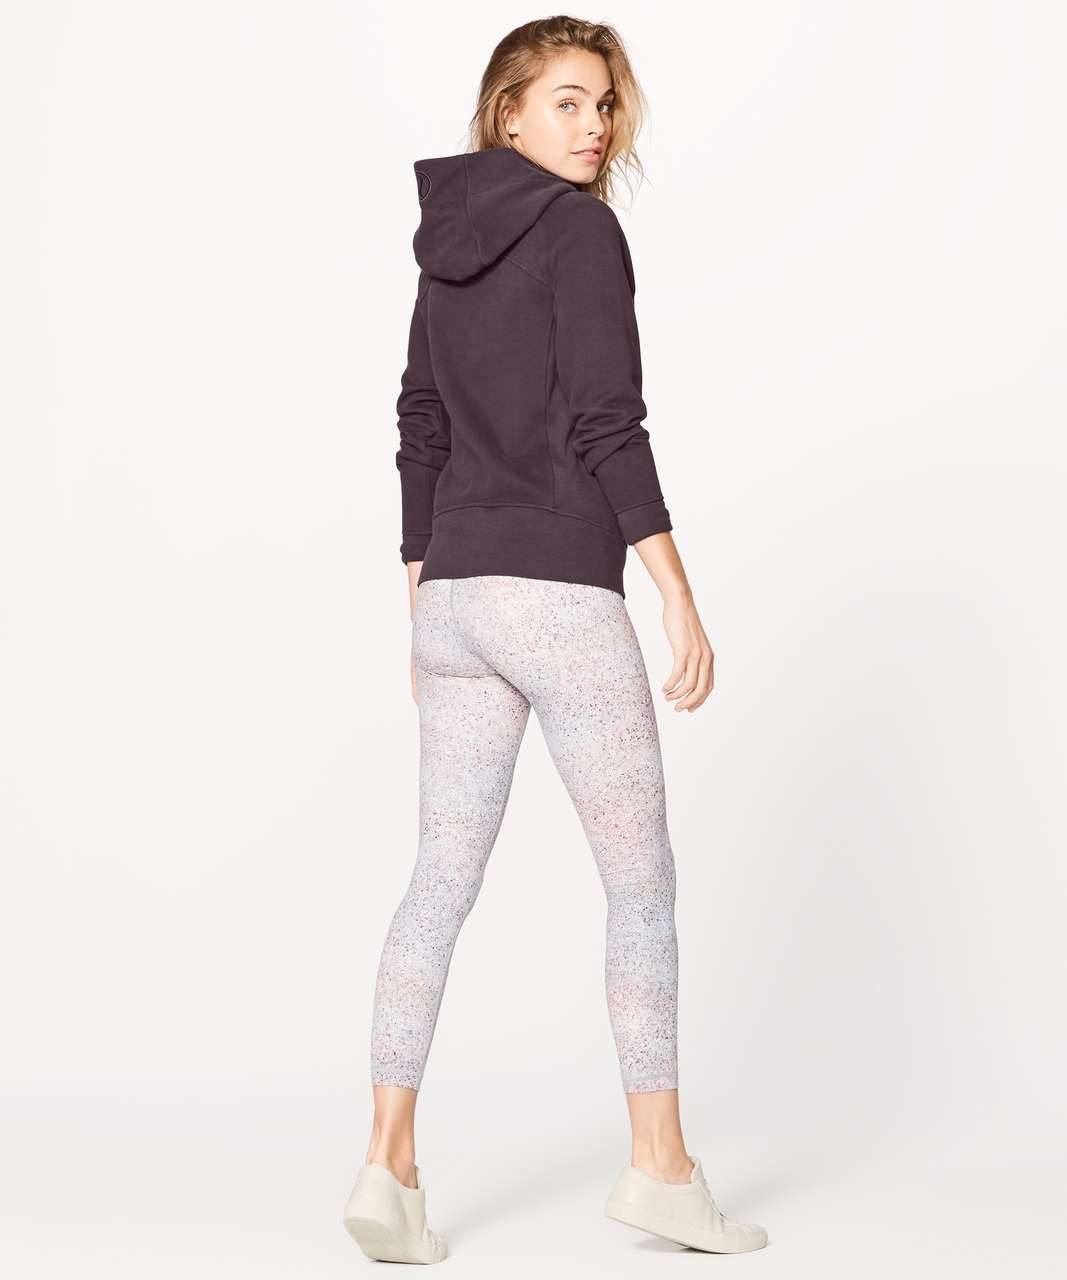 Lululemon Scuba Hoodie *Light Cotton Fleece - Pelt